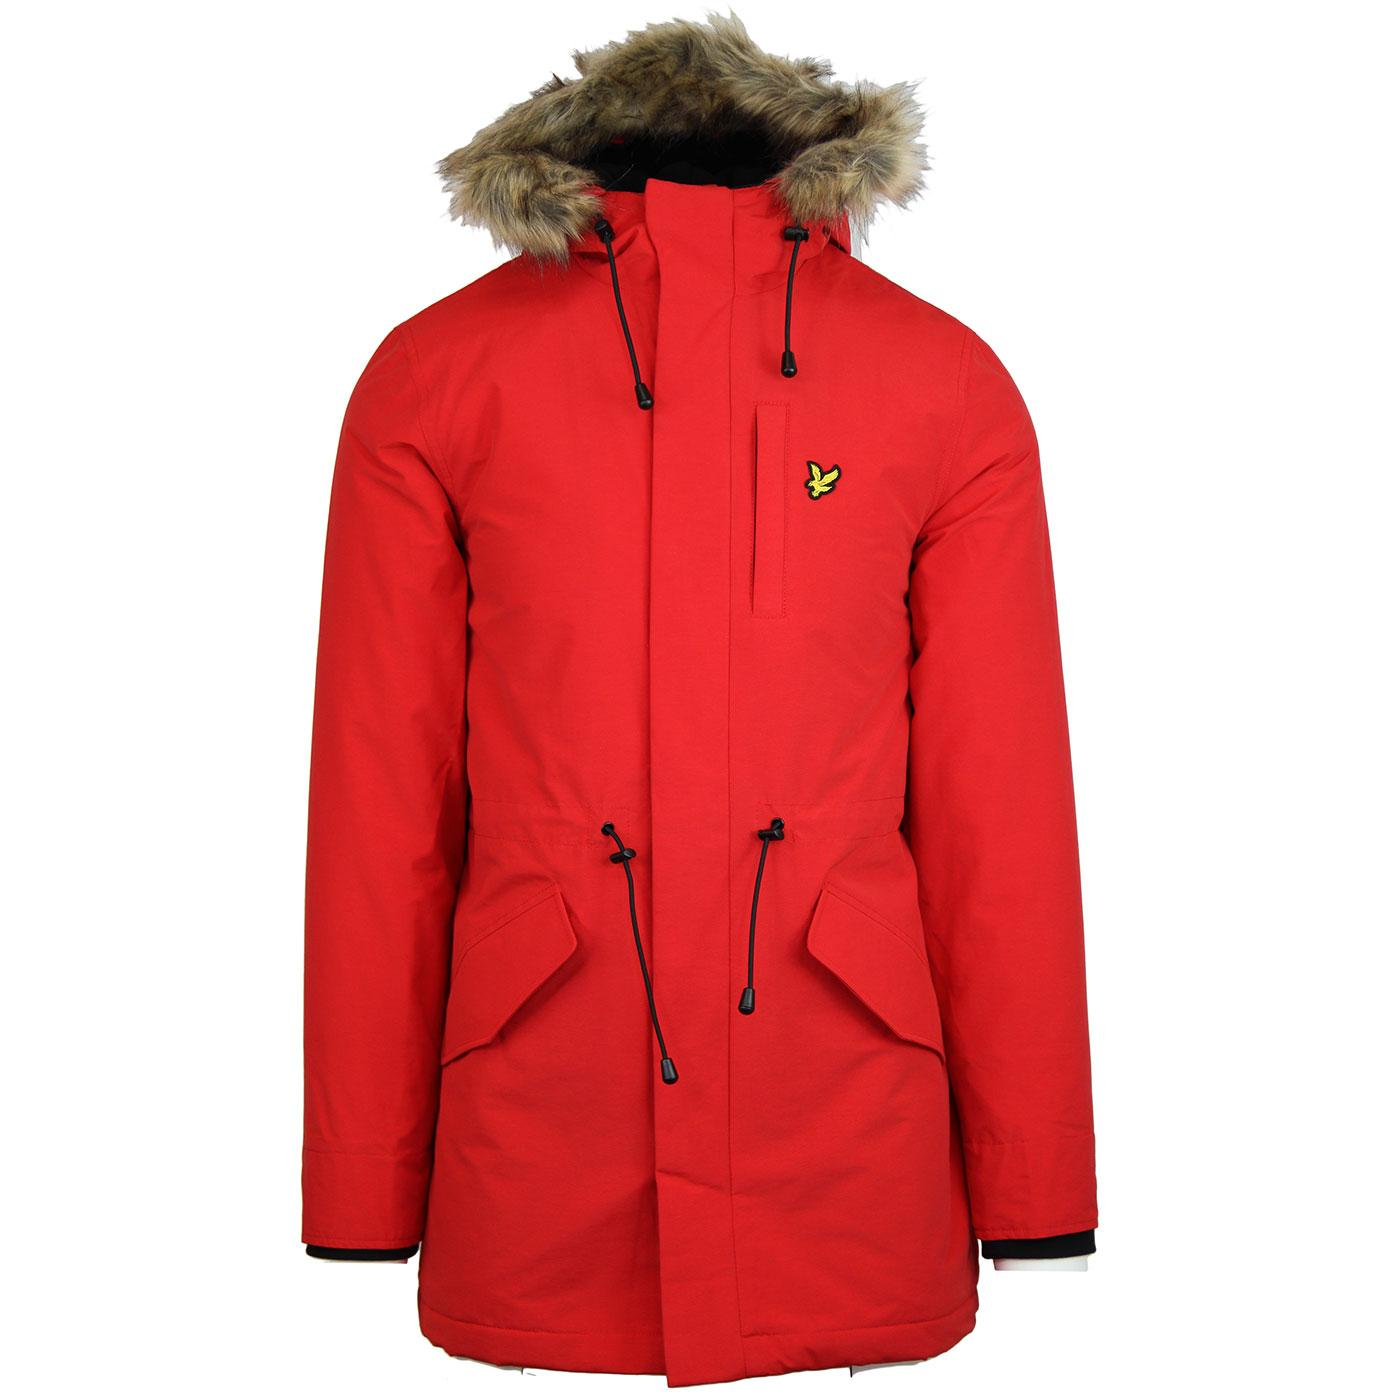 Lyle /& Scott Mens Microfleece Lined Parka